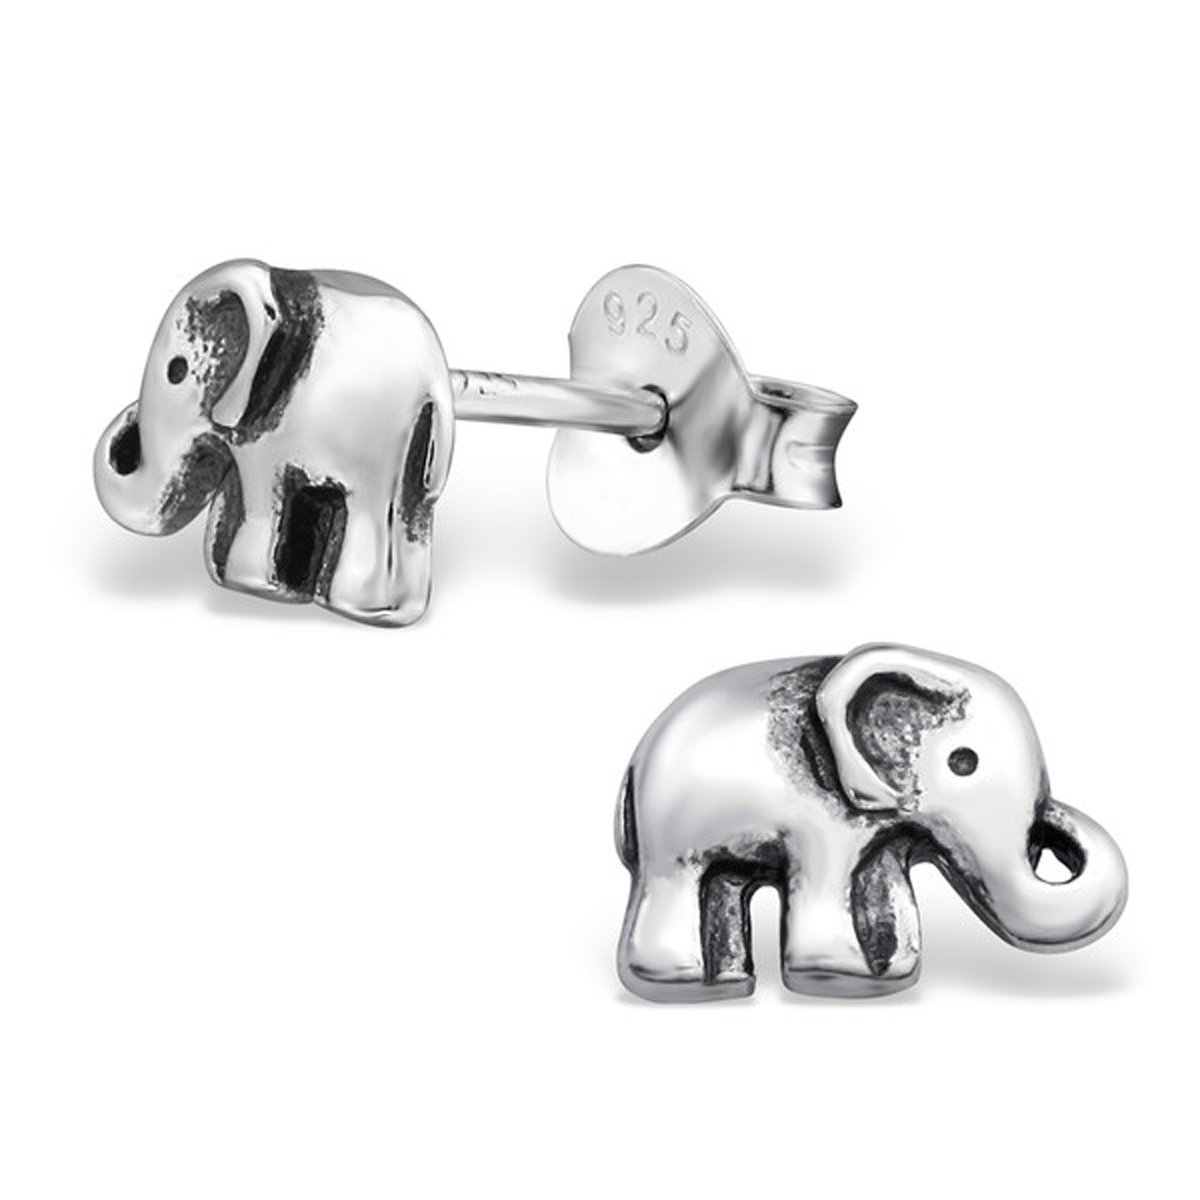 Cute Tiny Baby Elephant Plain Slver Studs Earrings Sterling Silver 925 (28245/29094) by PTN Silver Jewelry (Image #1)